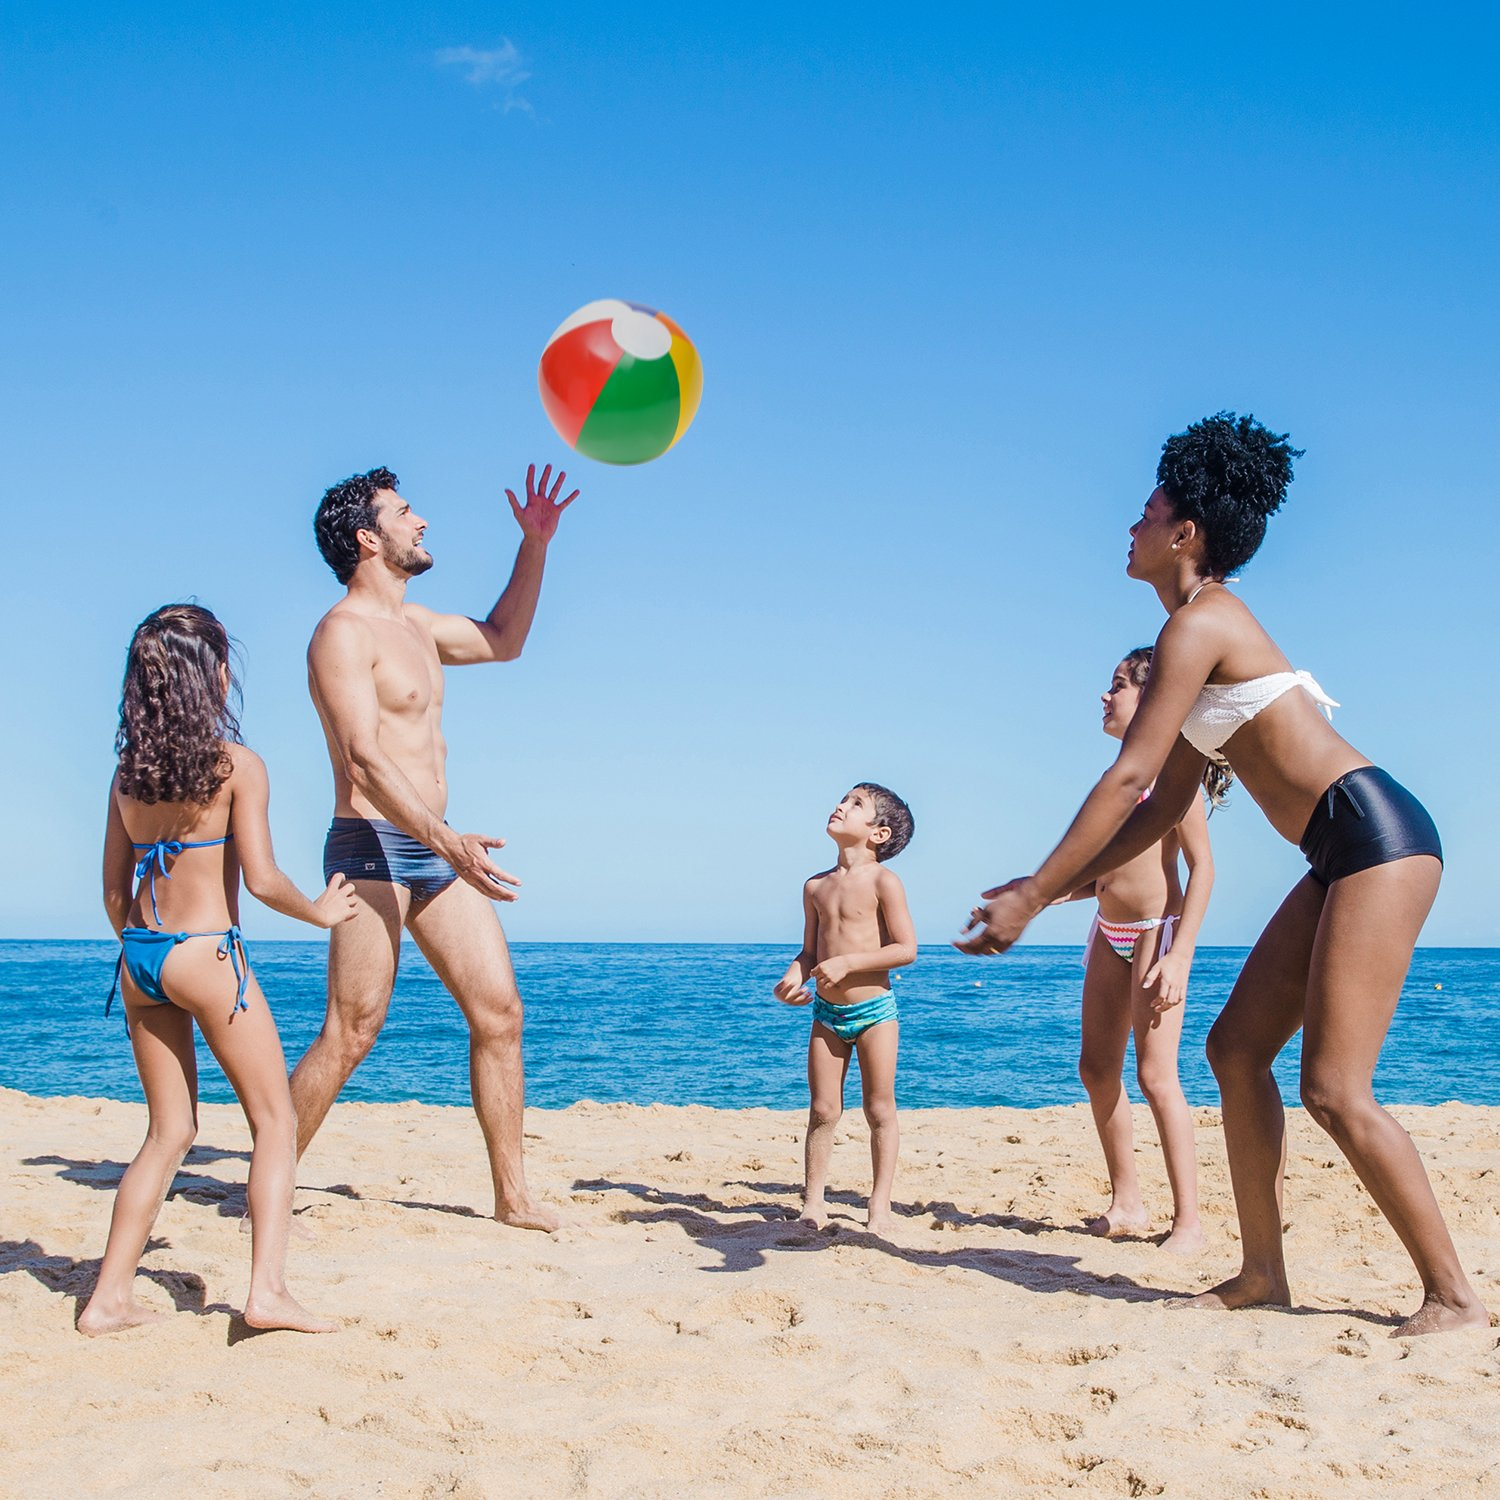 Summer Party Supply/'s Multicolored Balls Inflatable 16 Inch Rainbow Beach Ball Pack of 12 for Swimming Beach Pool Toys for Kids Boys and Girls